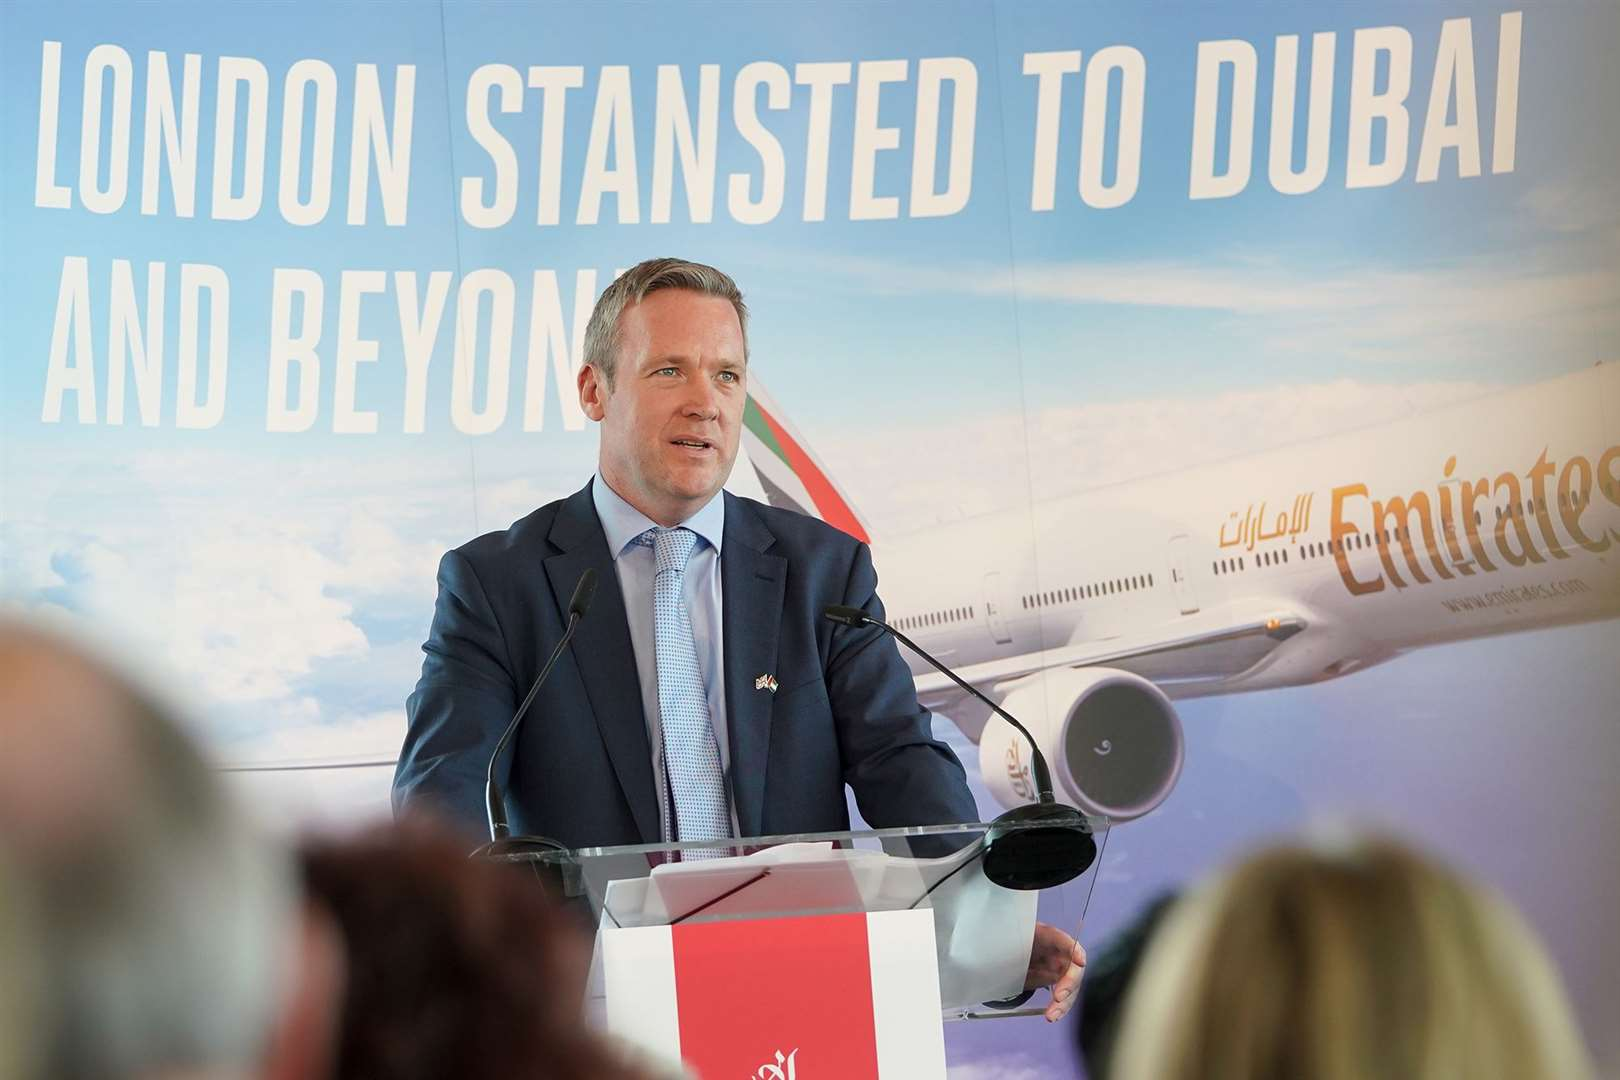 Ken O'Toole at the first Emirates flight launch in June 2018 (7702505)